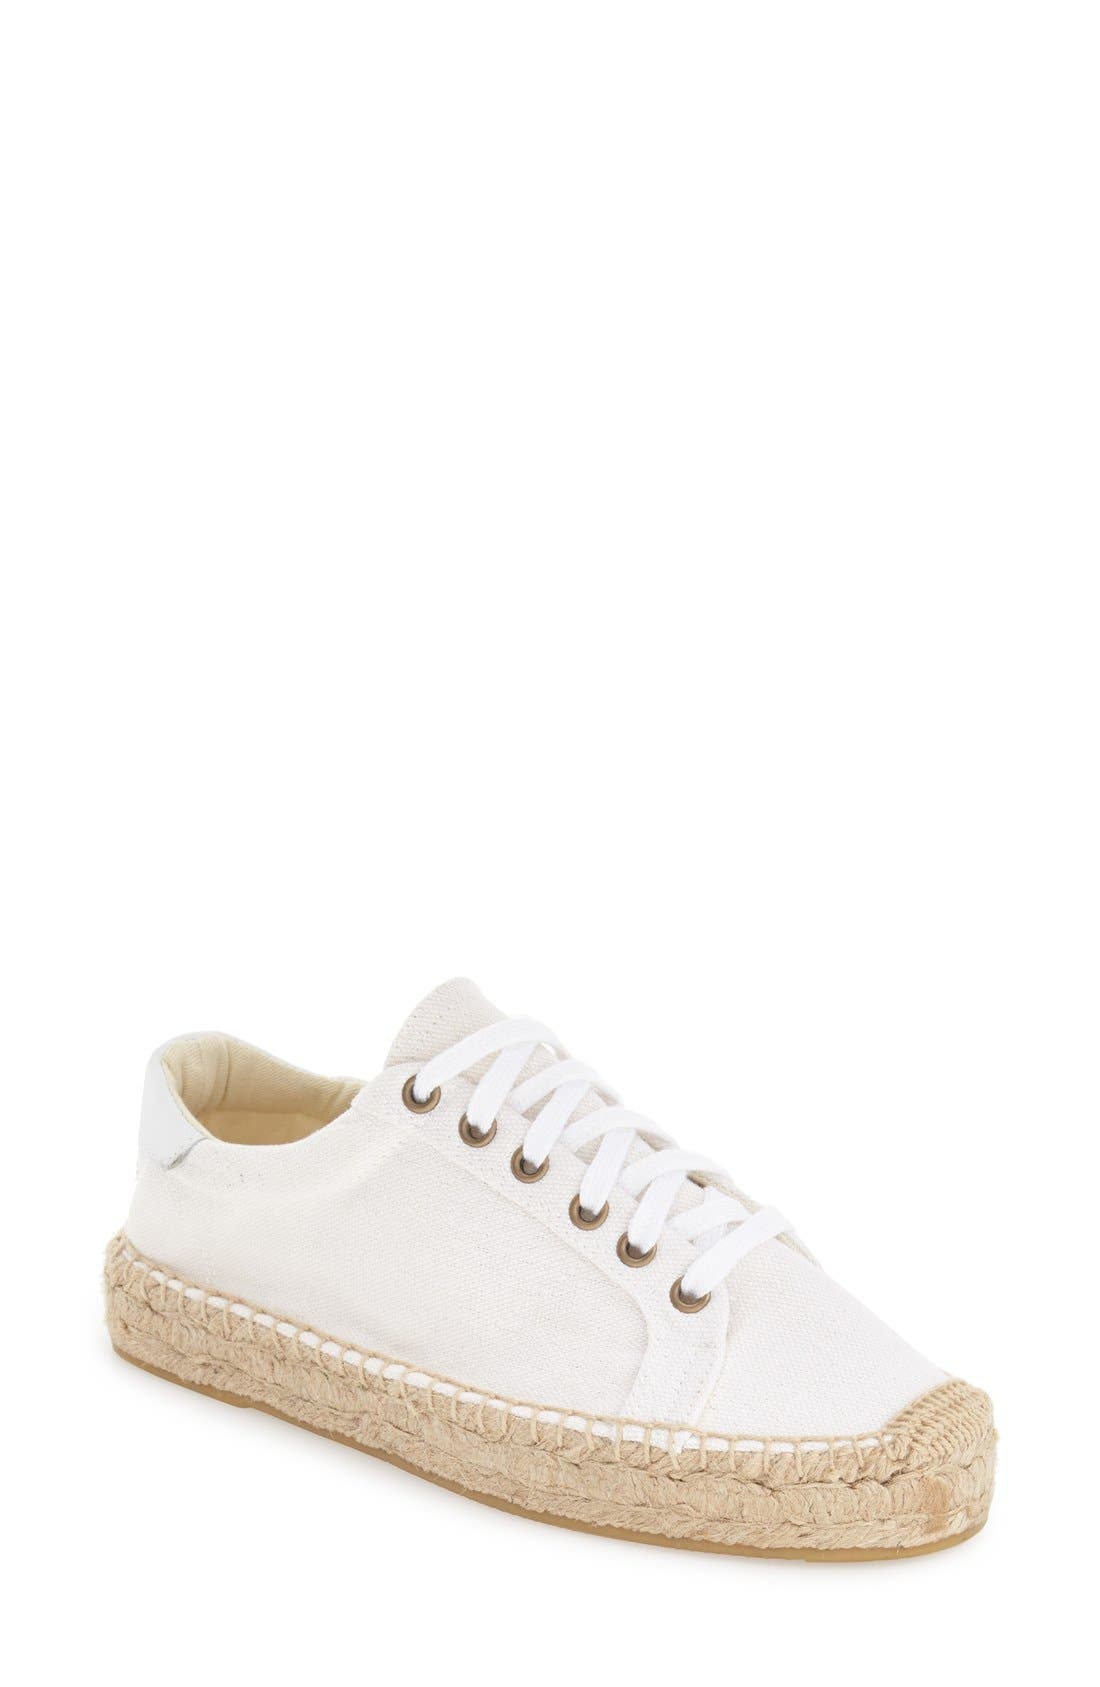 Espadrille Platform Sneaker,                         Main,                         color, Bright White Canvas